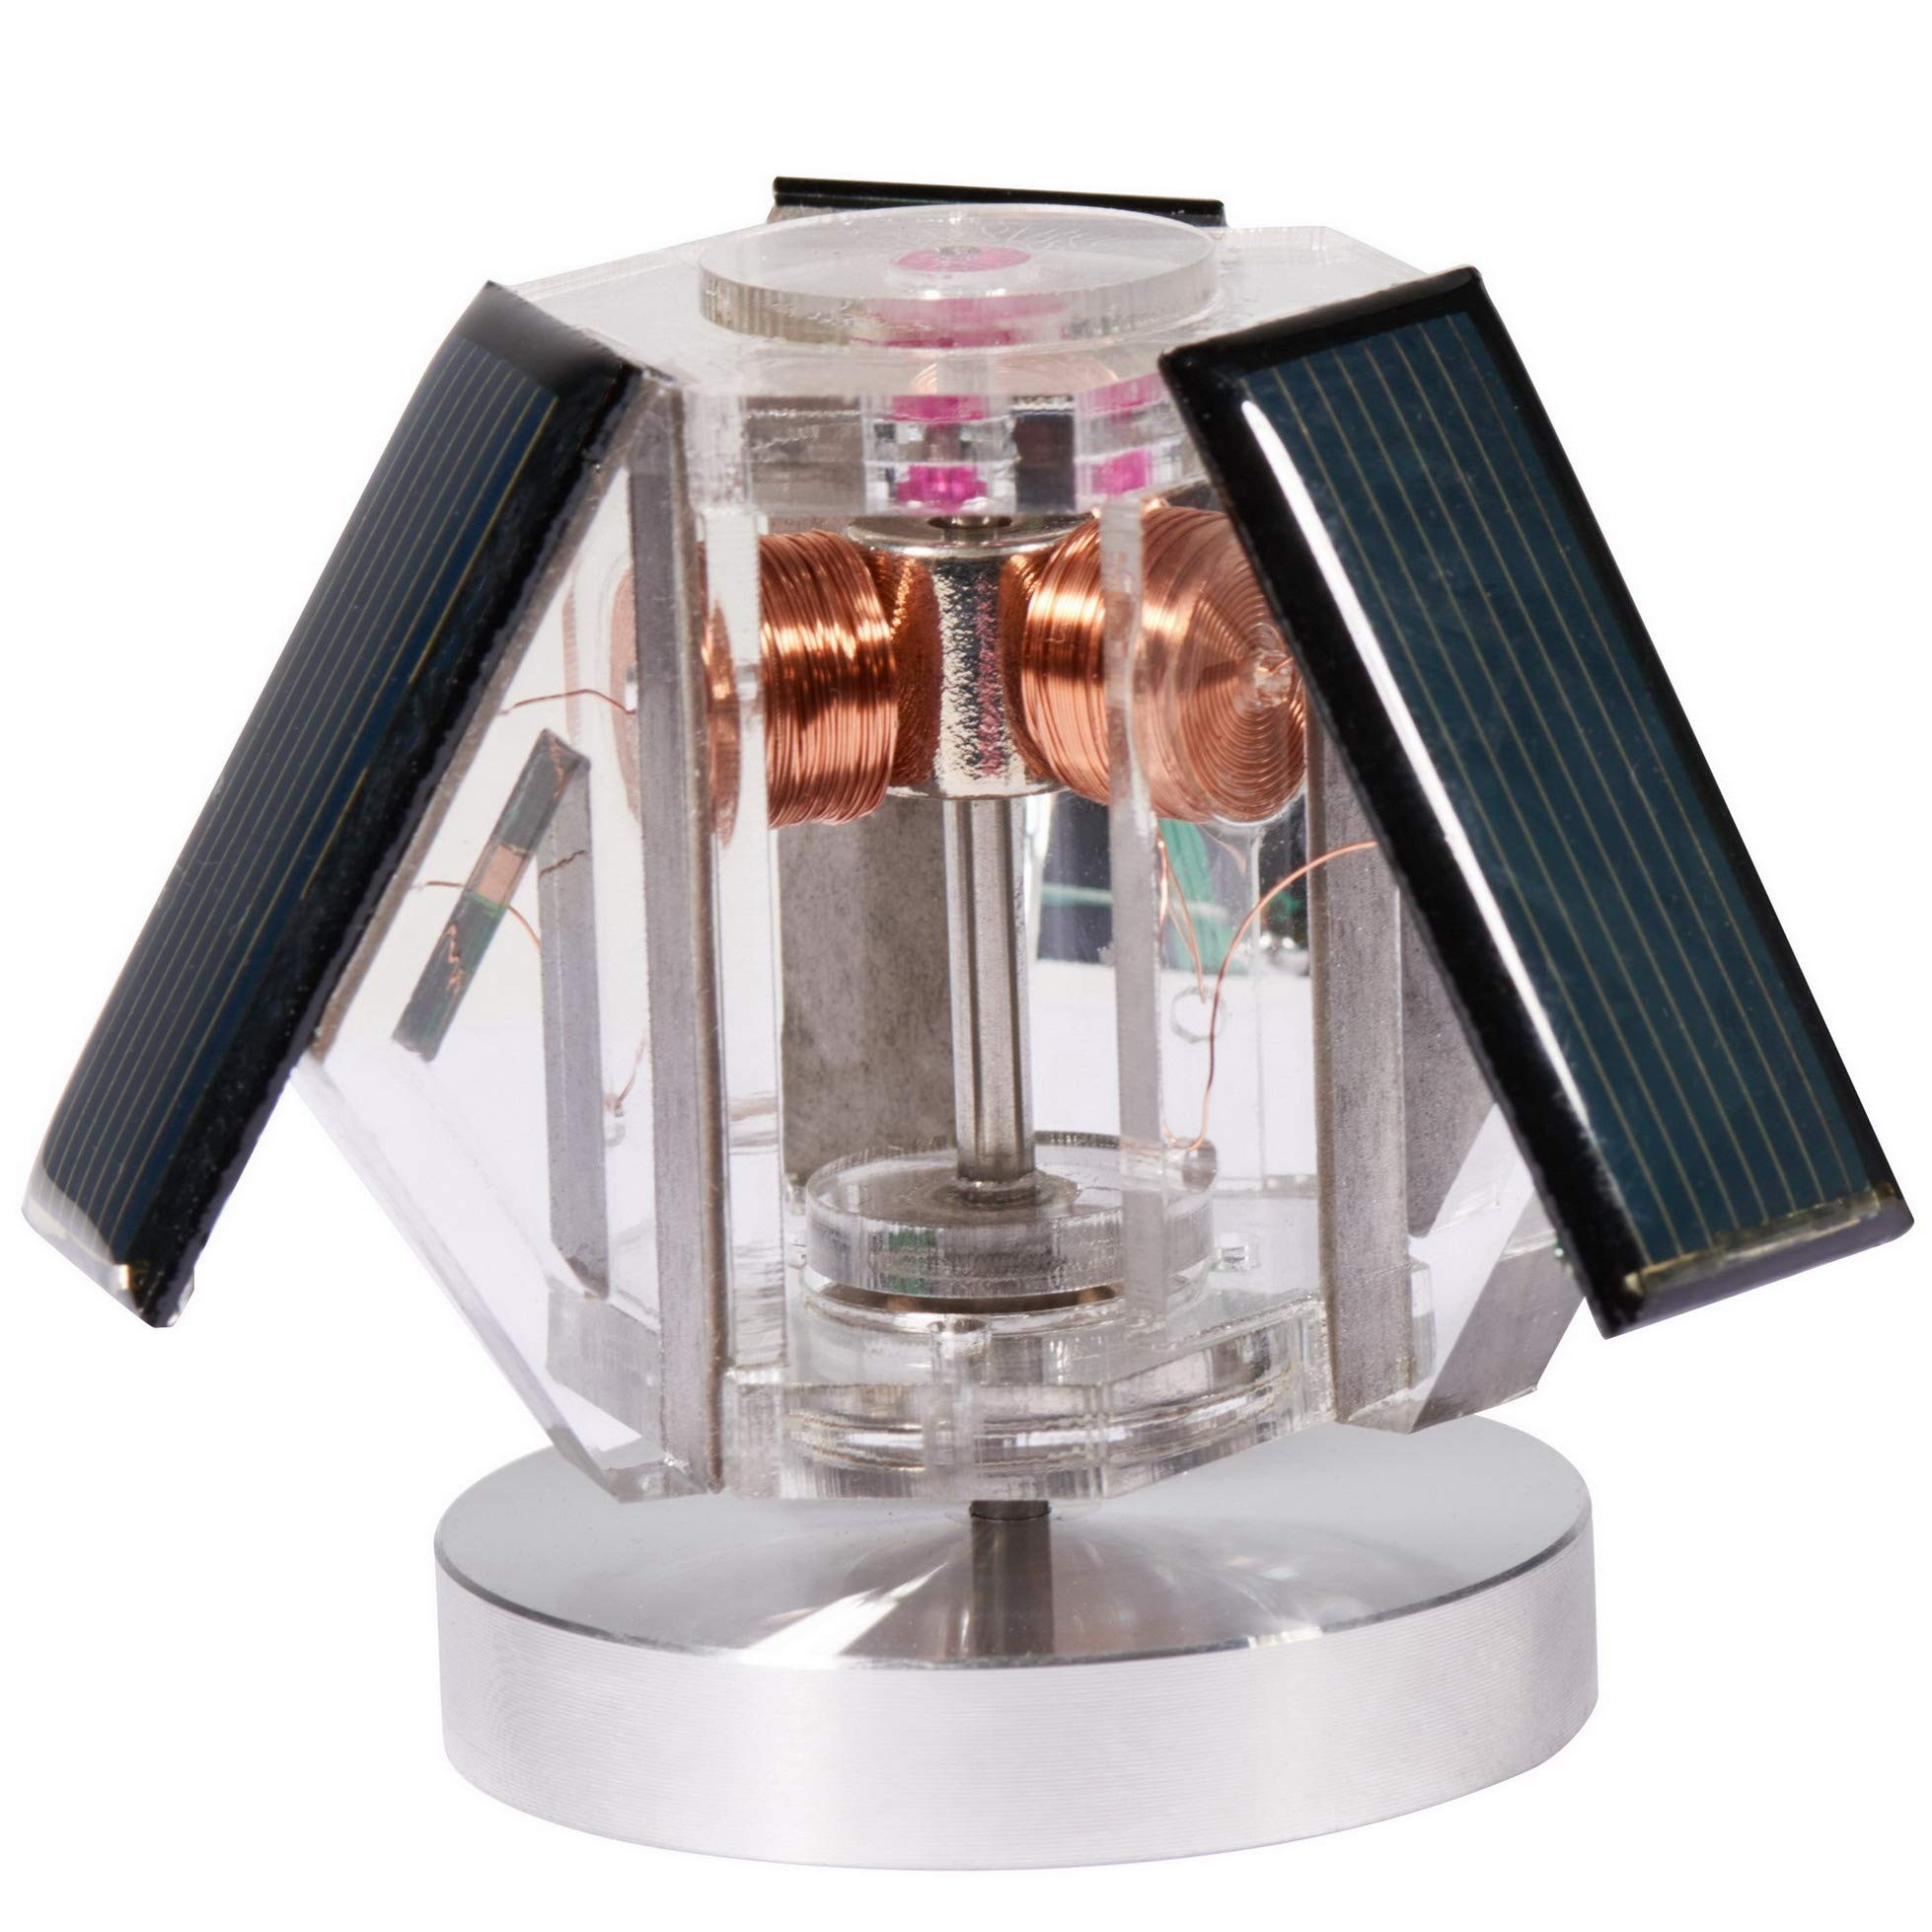 Sunnytech Mini Solar Vertical Mendocino Motor Magnetic Levitating Educational Model Science Physics Toy QZ08A